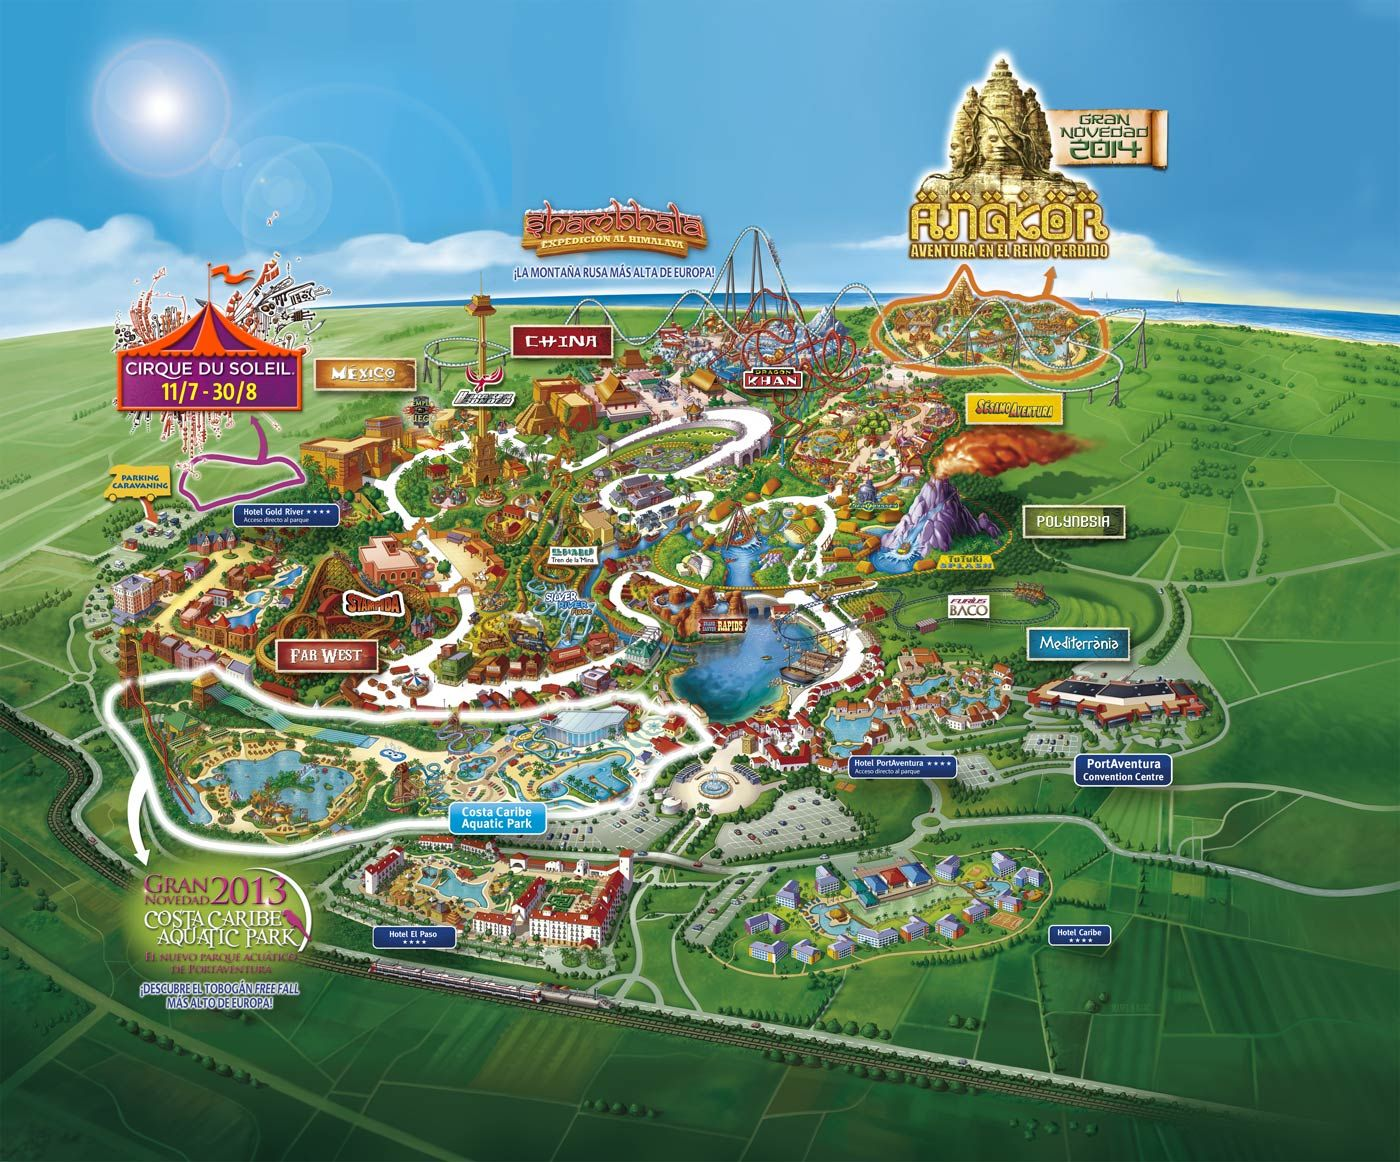 Port Aventura 2014 Map Salou Catalonia Maps Pinterest